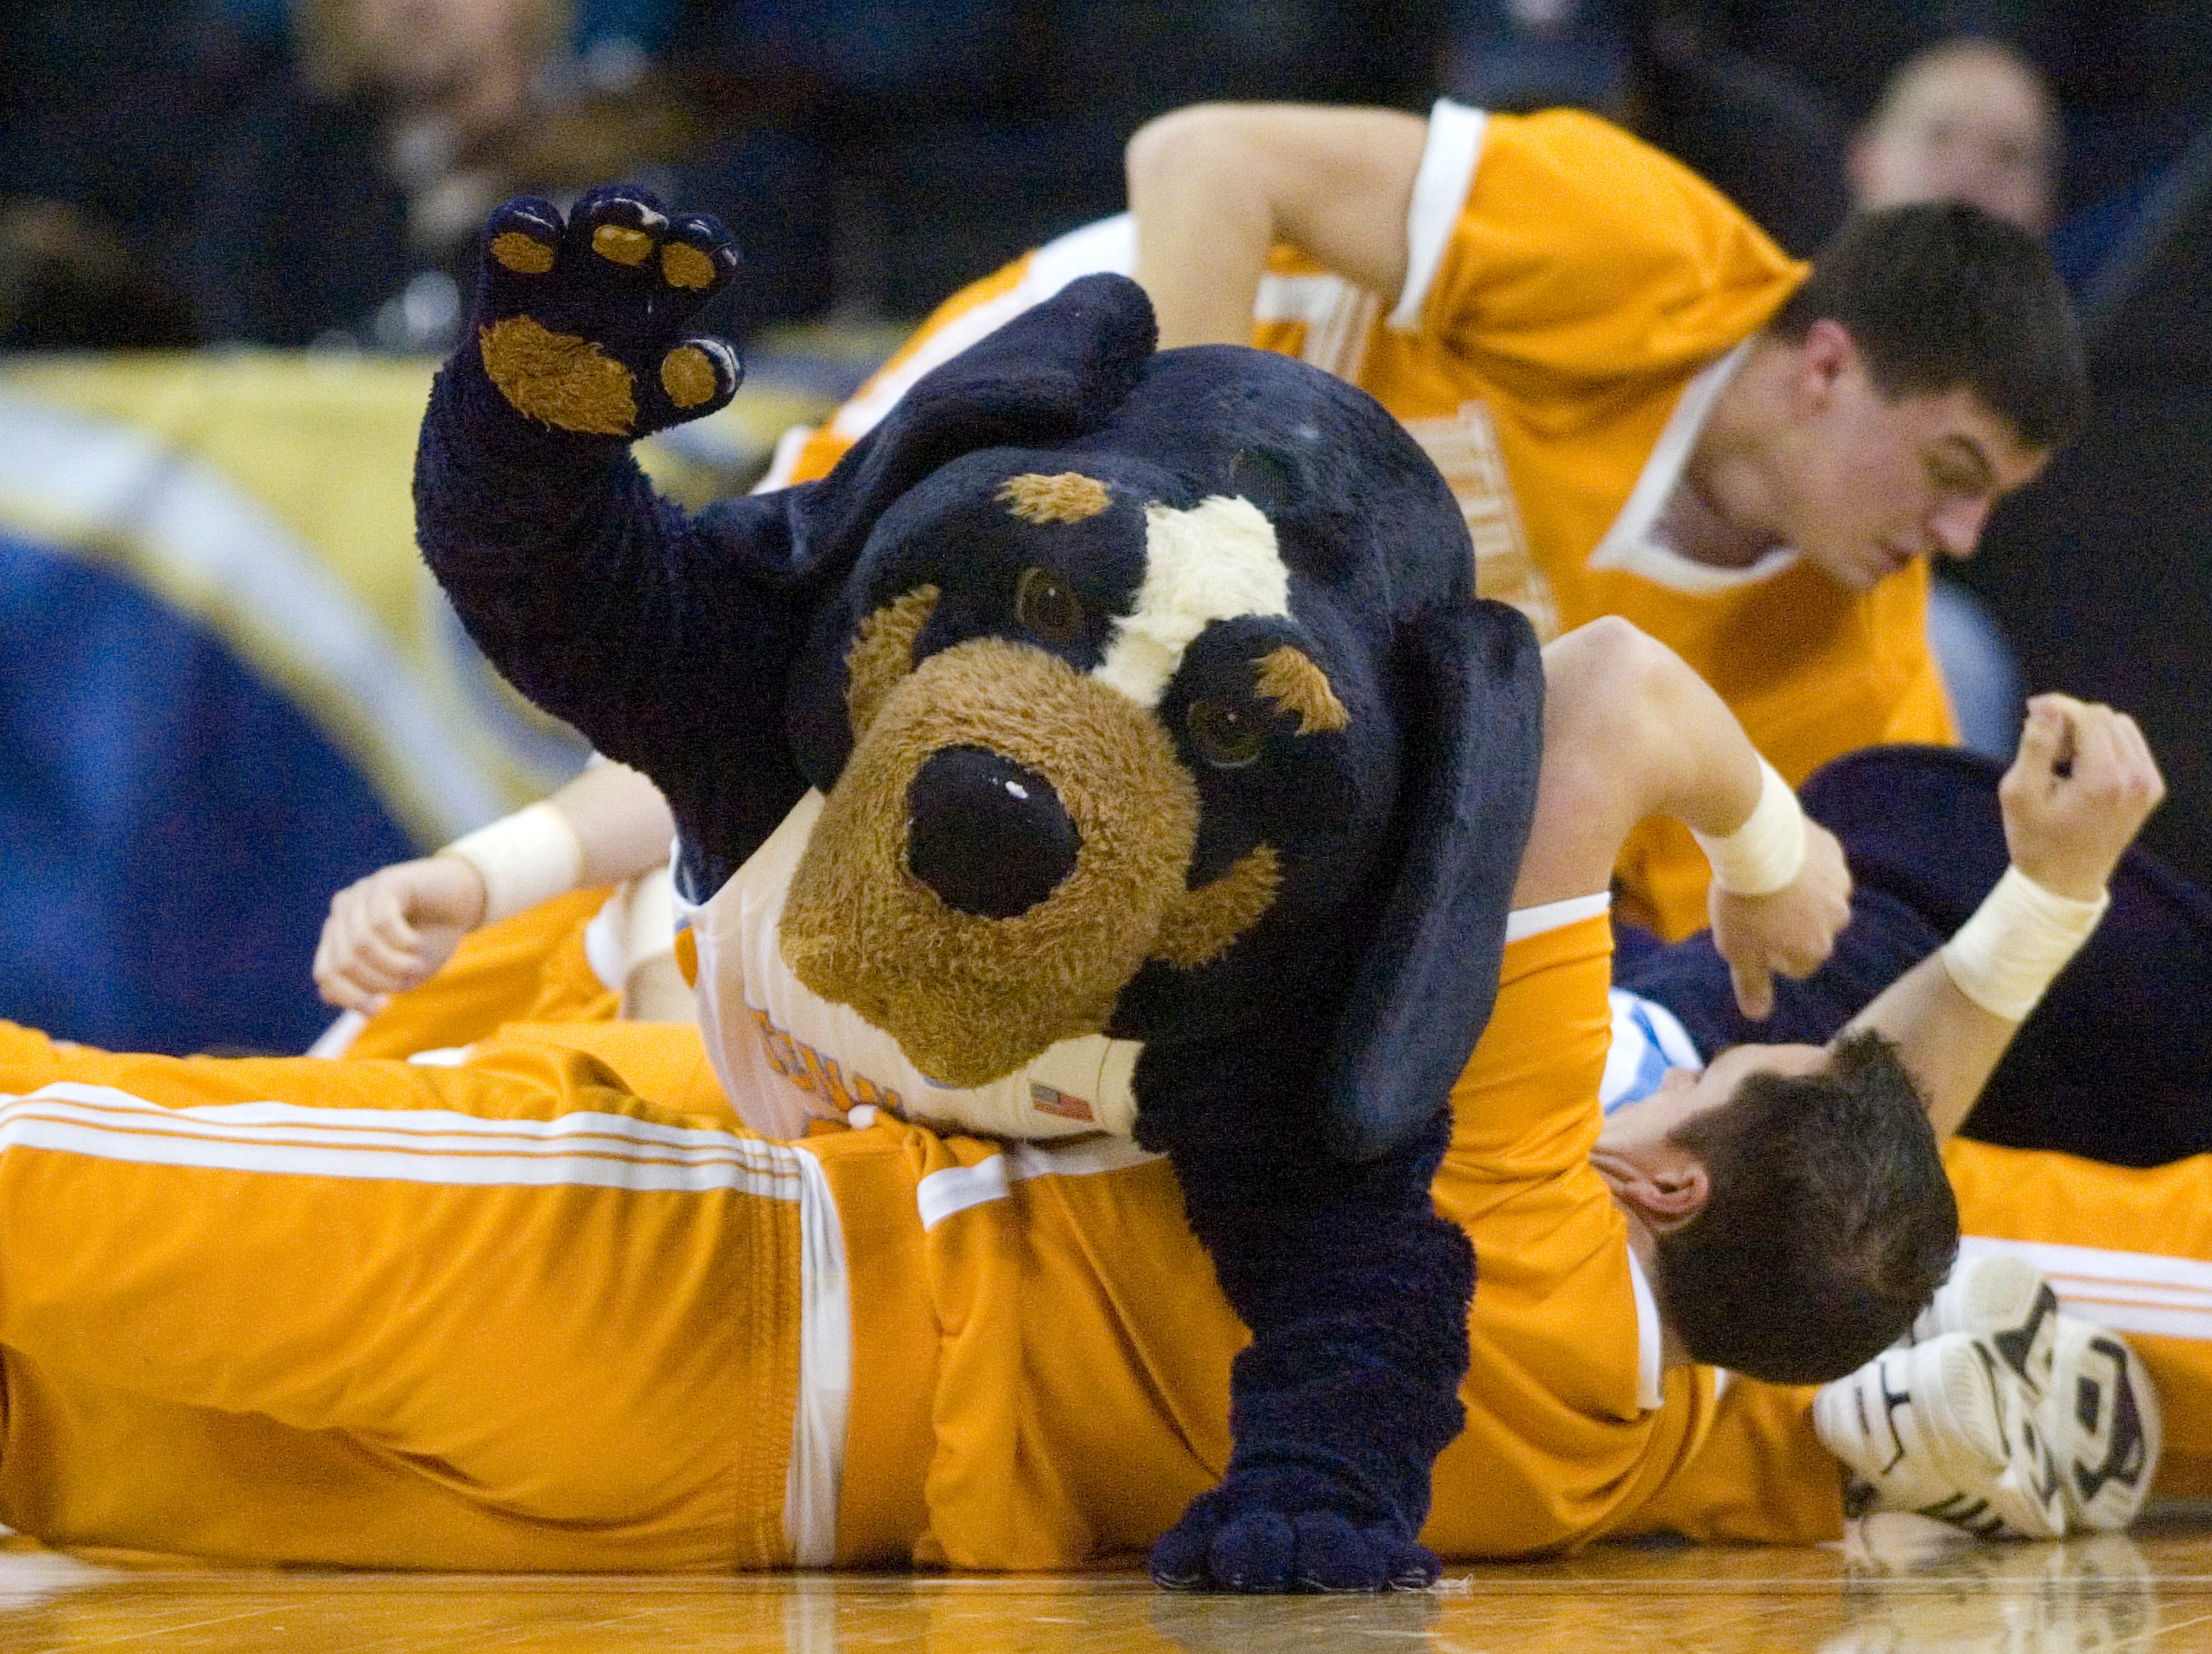 Tennessee mascot Smoky rolls over the Tennessee cheerleaders during a timeout against Vanderbilt in the second half during a semifinal game of the Southeastern Conference women's basketball tournament on Saturday, March 6, 2010, at The Arena at Gwinnett in Duluth, Ga. Tennessee defeated Vanderbilt 68-49. (AP Photo/Erik S. Lesser)